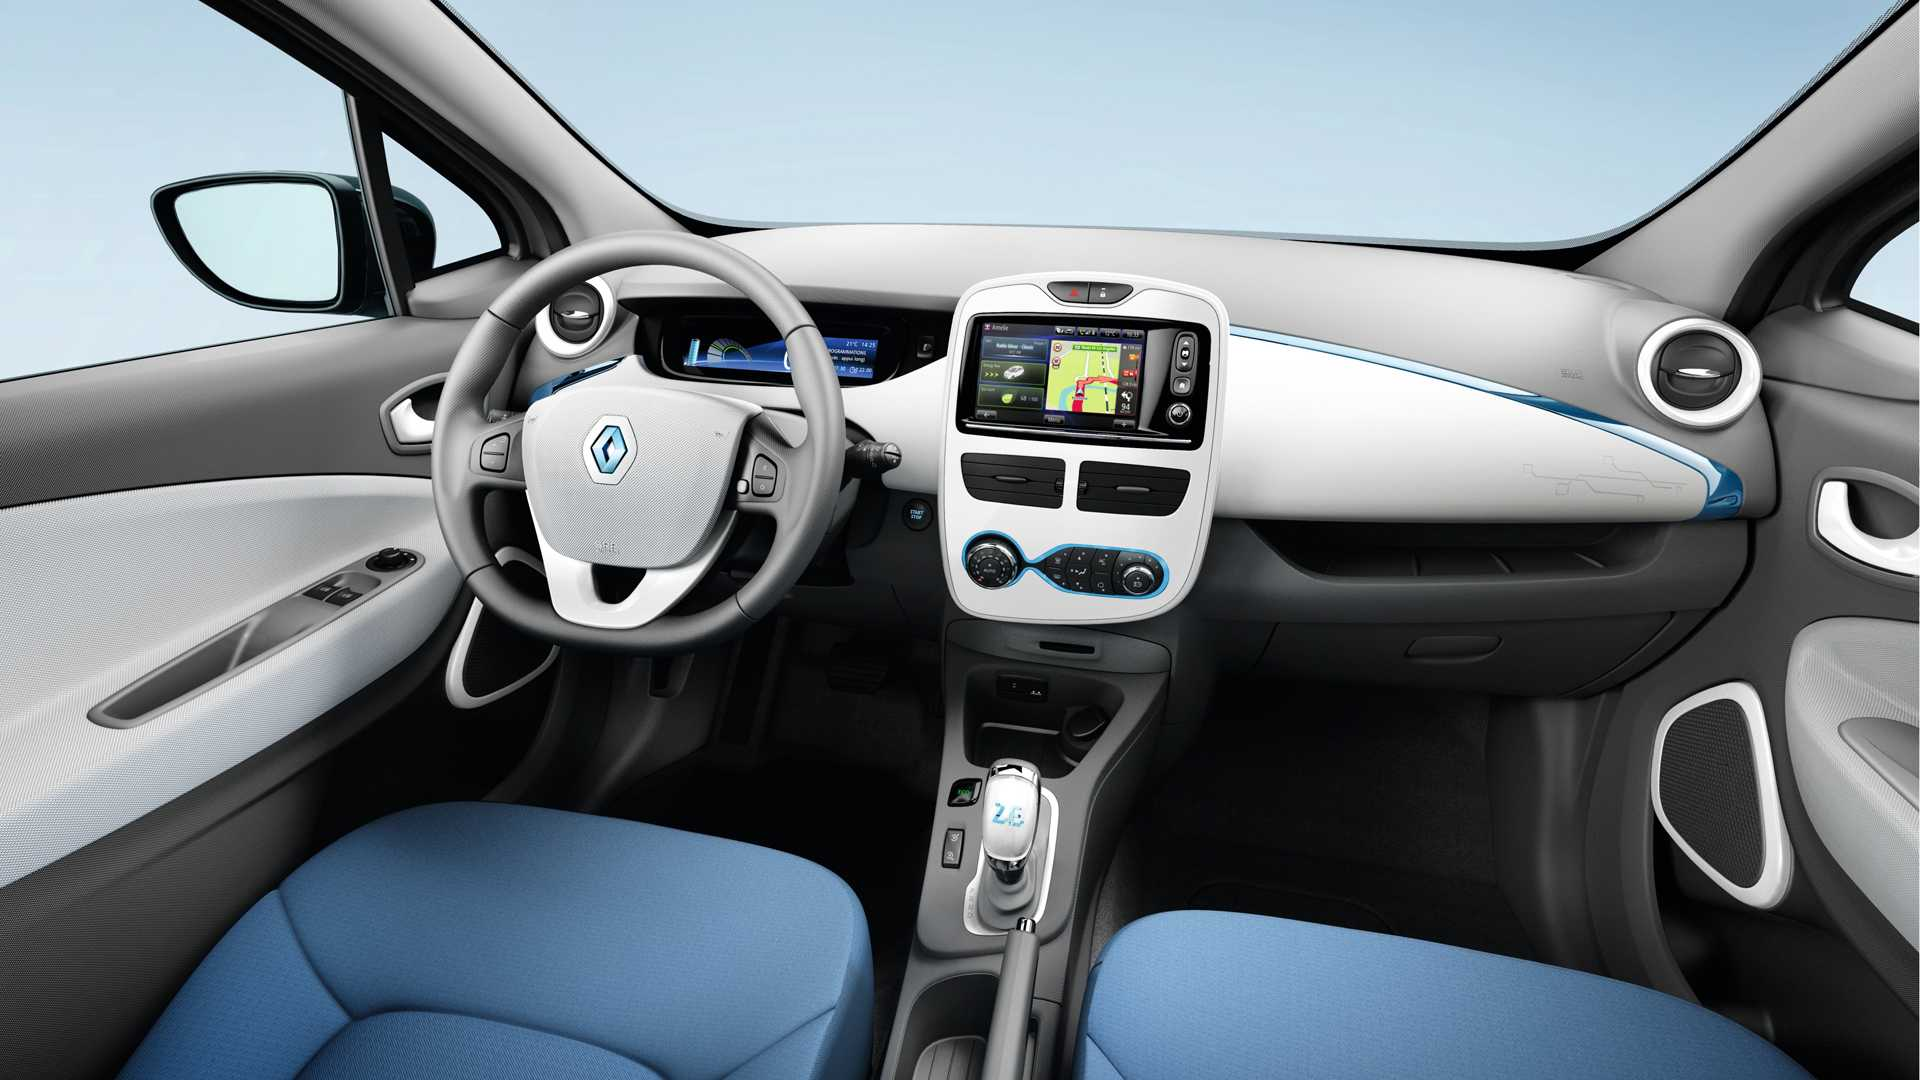 Renault Launches Zoe an All-Electric Vehicle in Malaysia with 210 KM Range